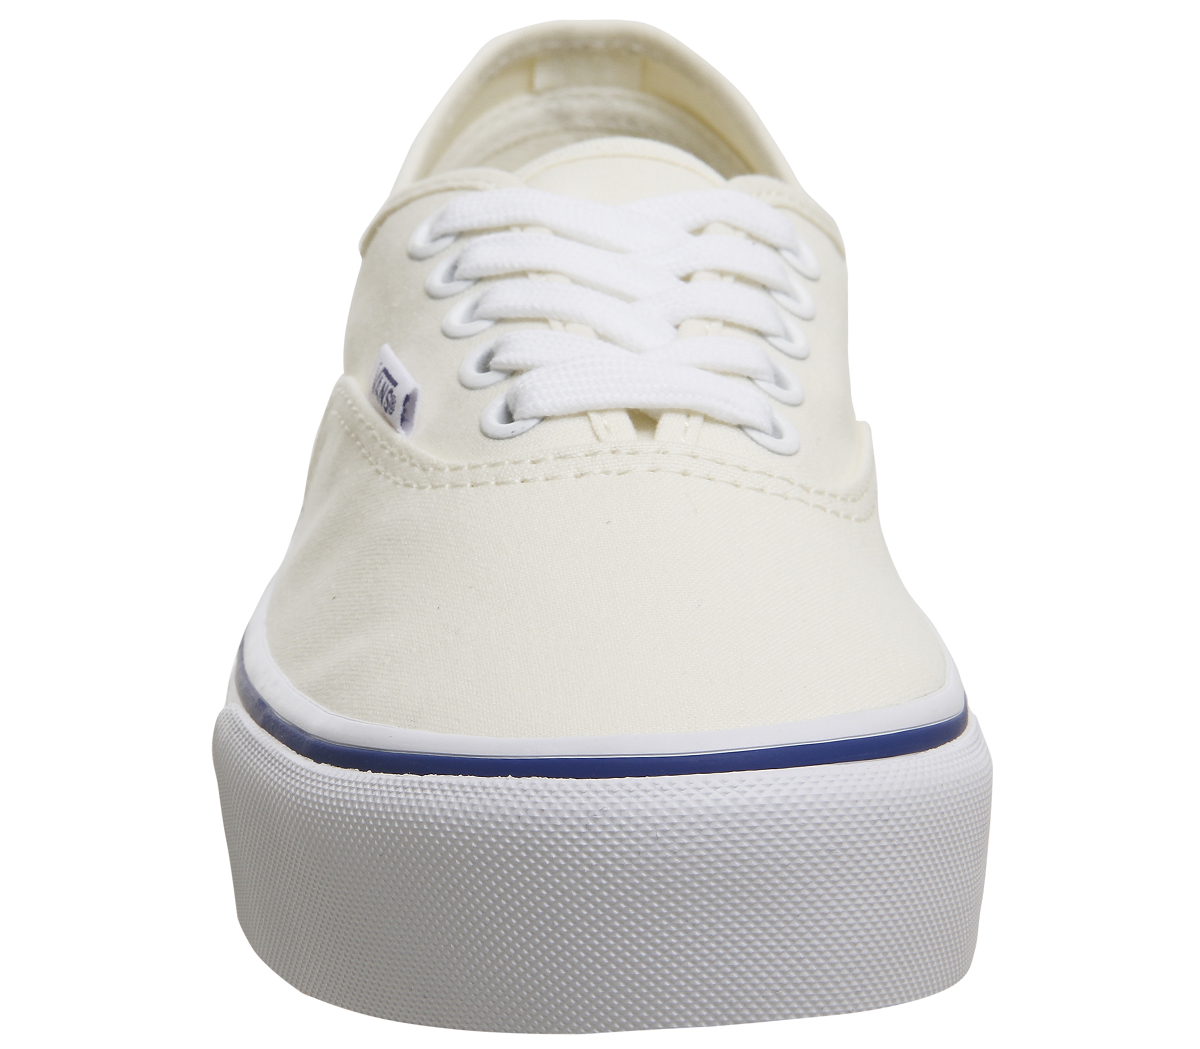 Sentinel Womens Vans Authentic Platforms Classic White Trainers Shoes f282f652ef1